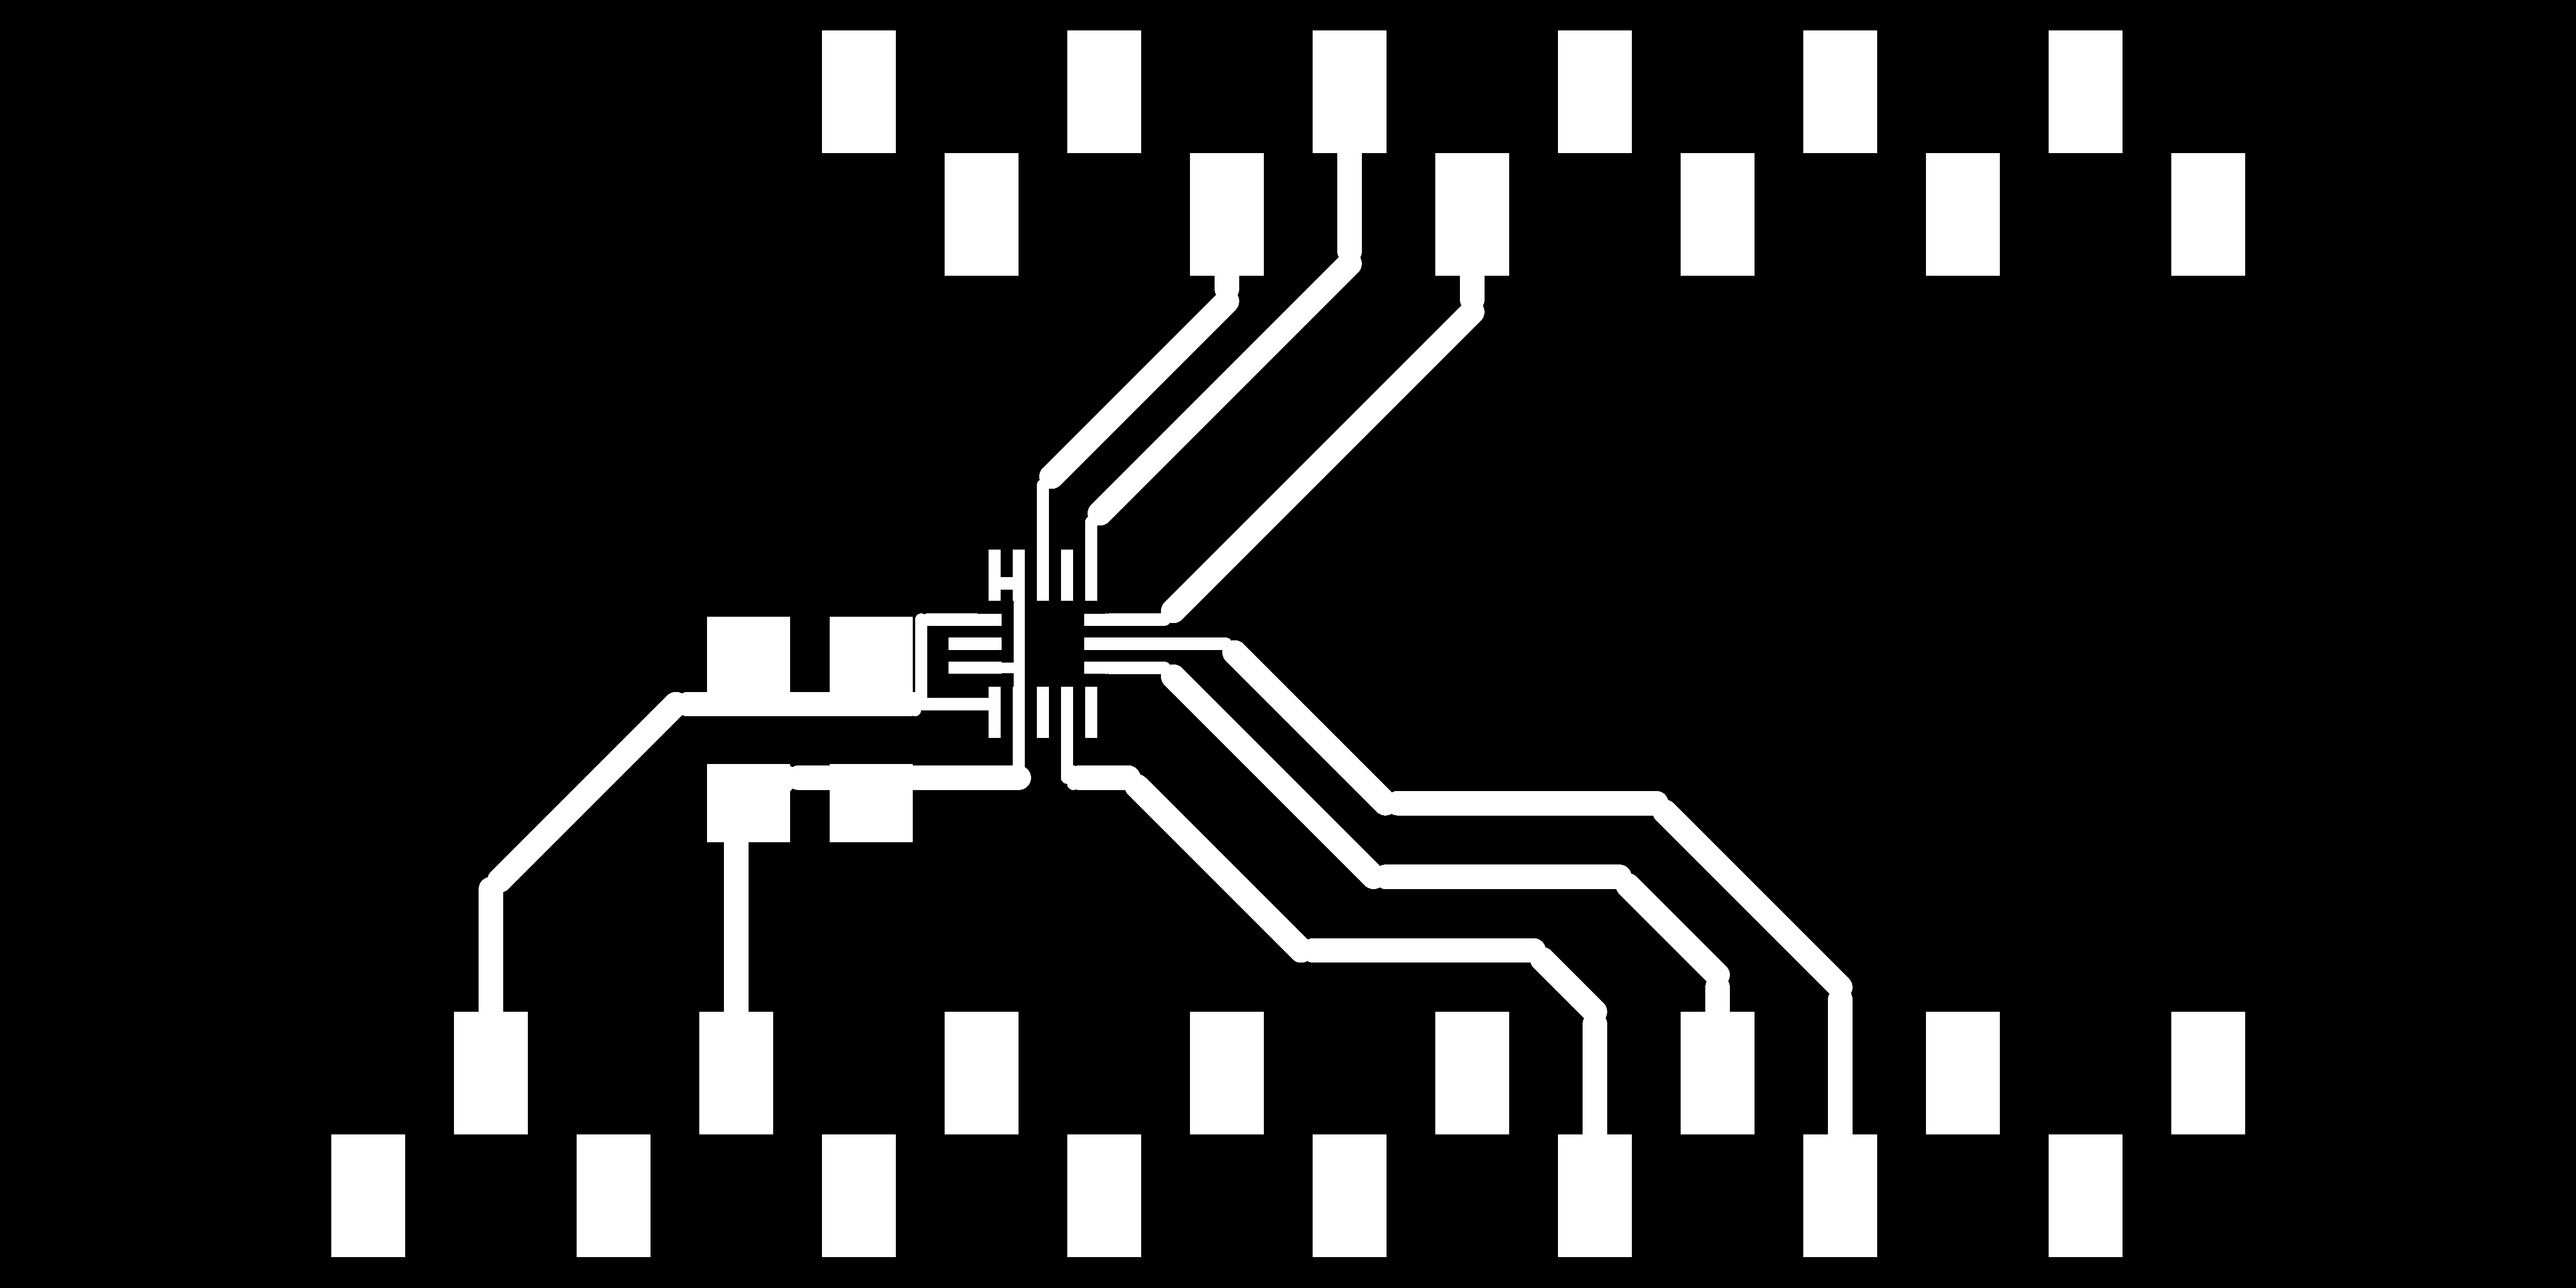 pcb/adxl372-adalogger-traces.png